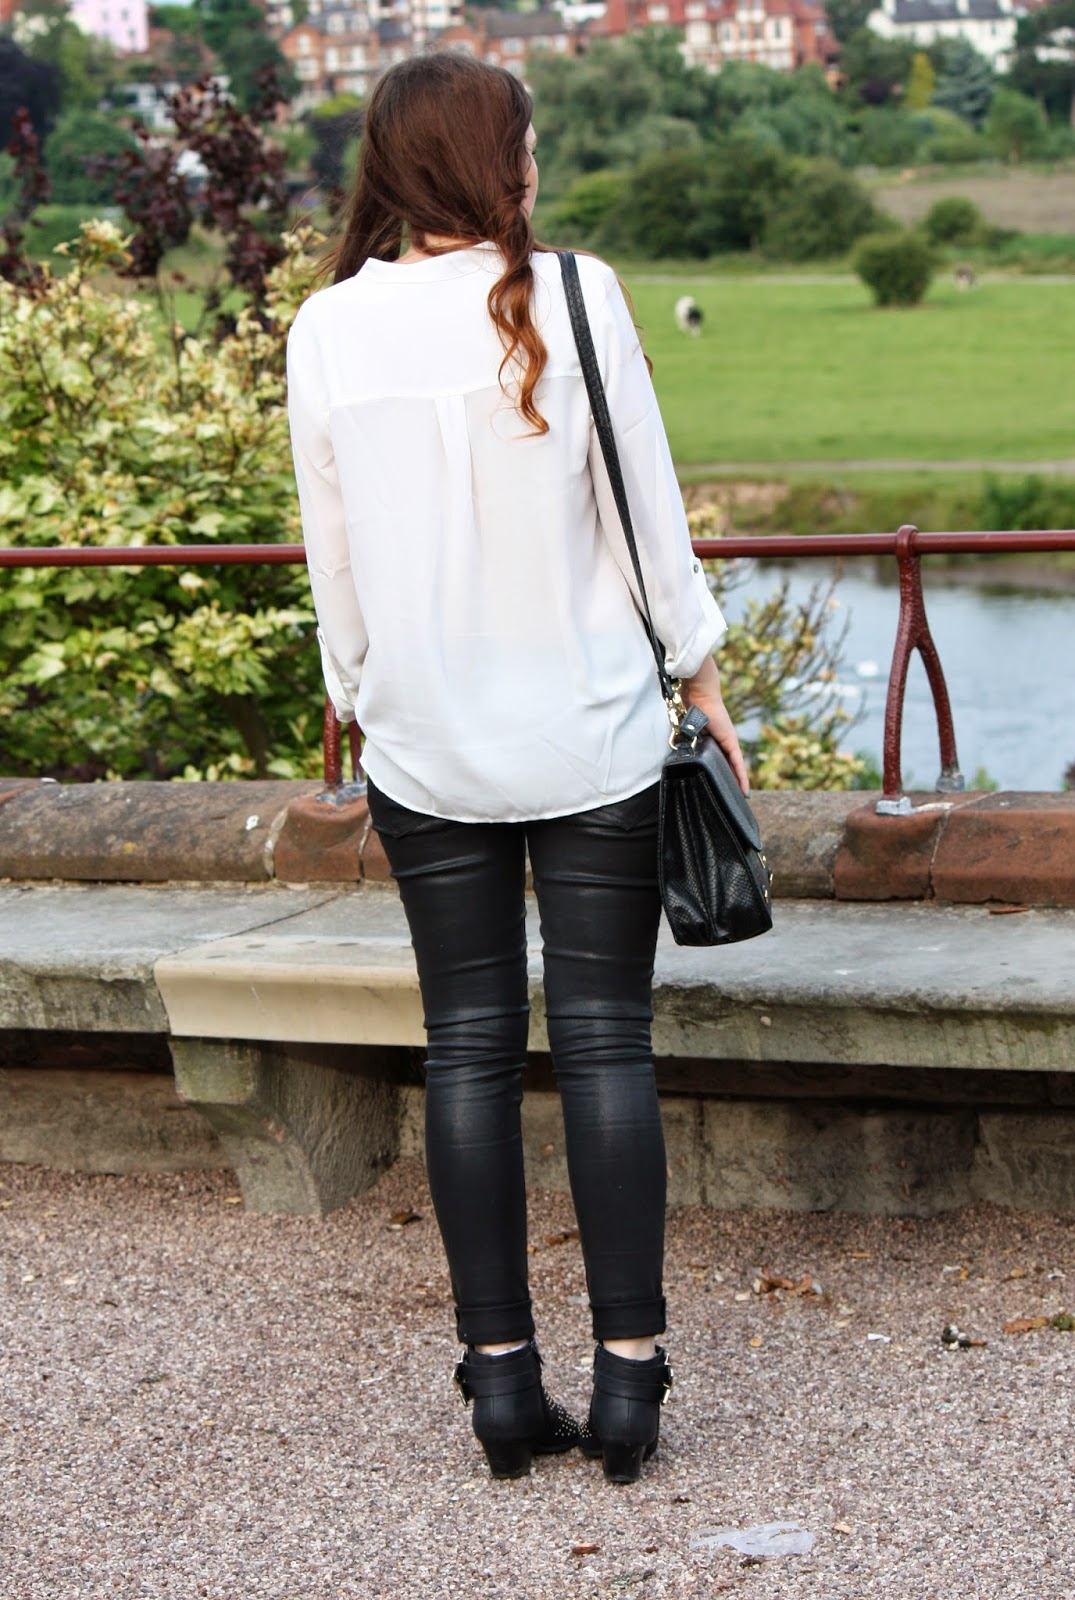 forever 21 shirt, all saints jeans, forever 21 boots, back ootd photo